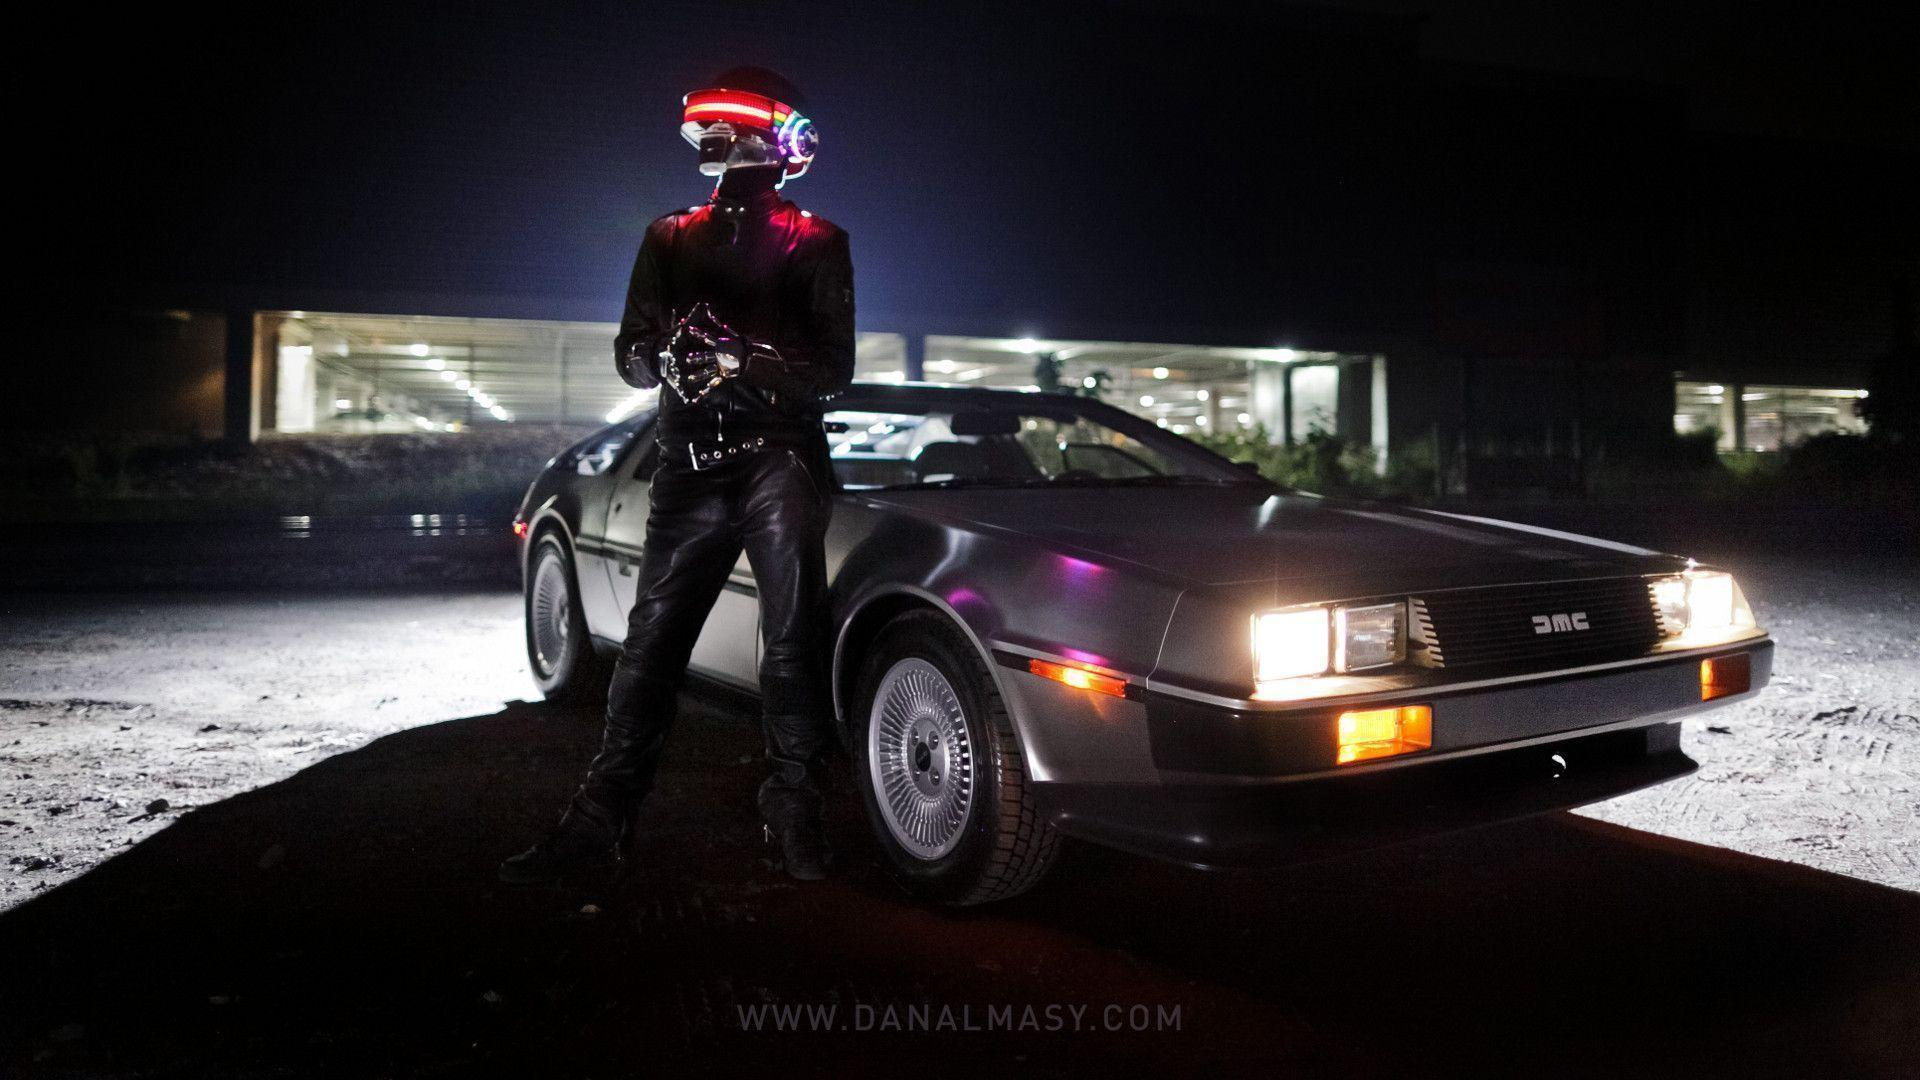 delorean wallpaper download - photo #9